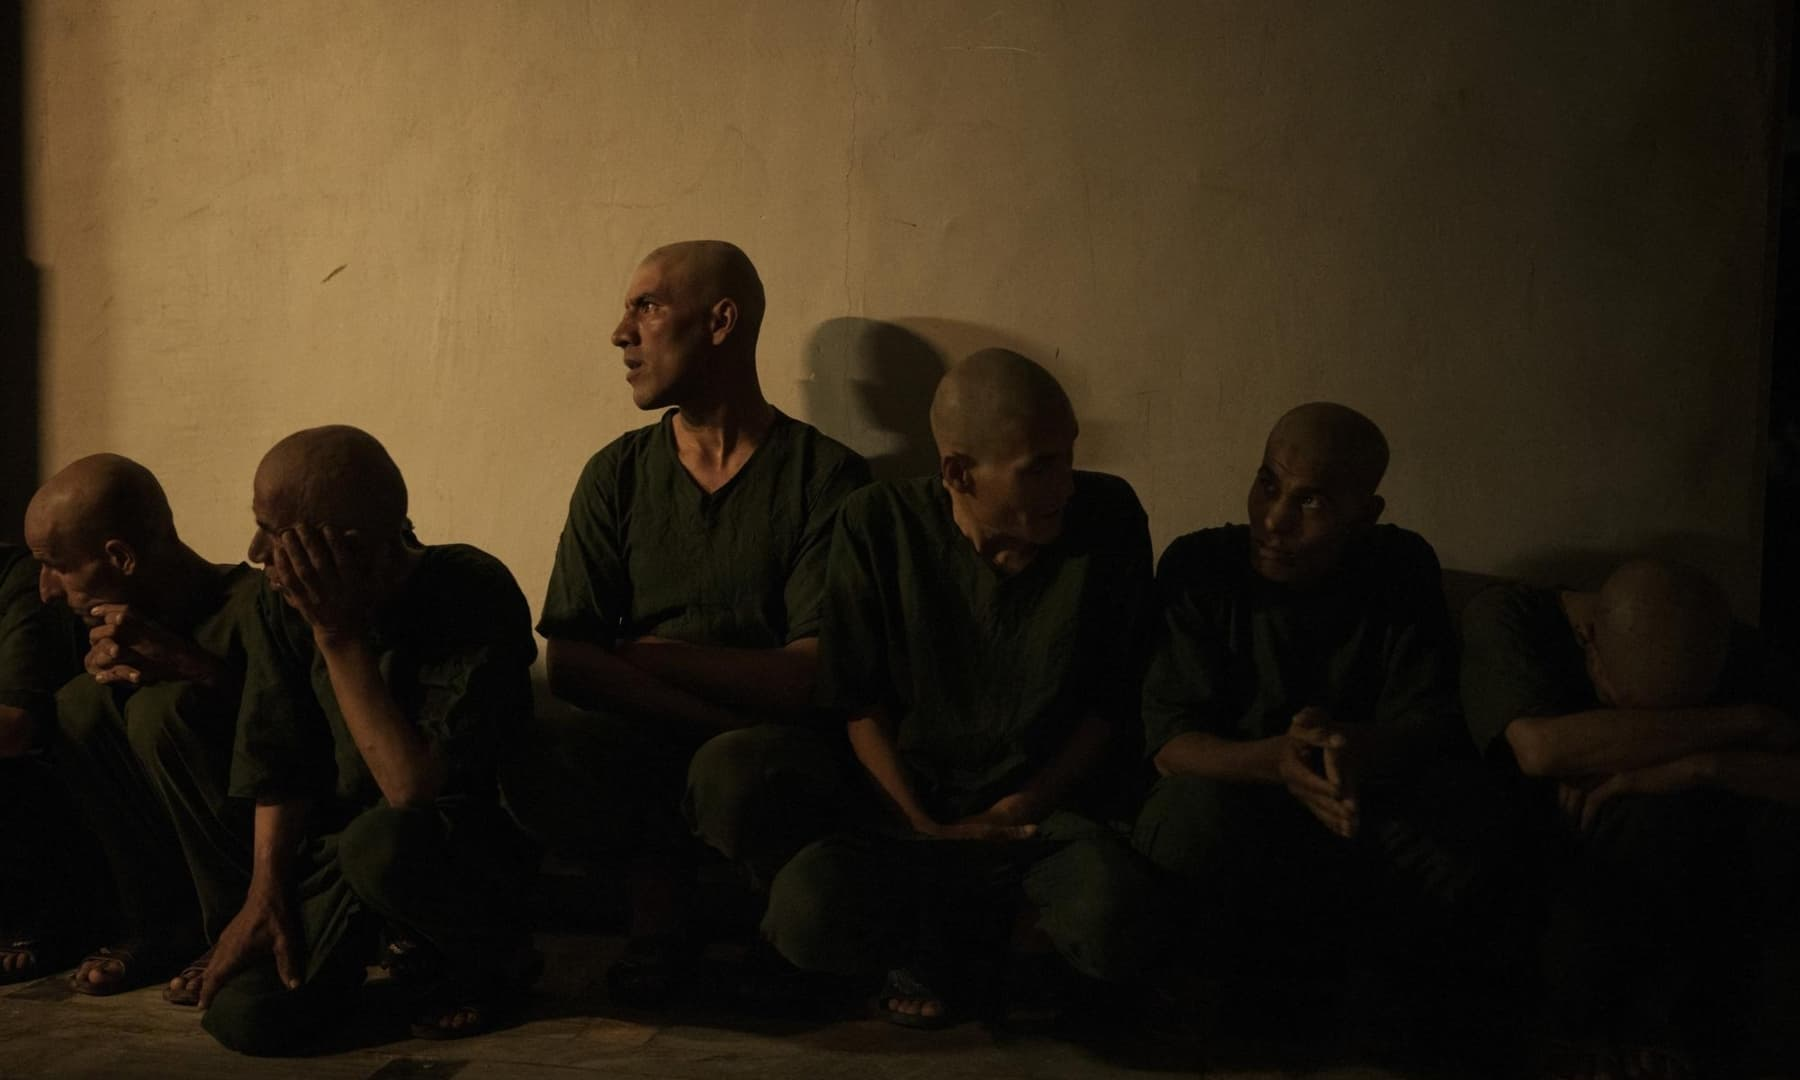 Drug users detained during a Taliban raid wait for a medical check in the detoxification ward of the Avicenna Medical Hospital for Drug Treatment in Kabul, Afghanistan, October 2, 2021. — AP